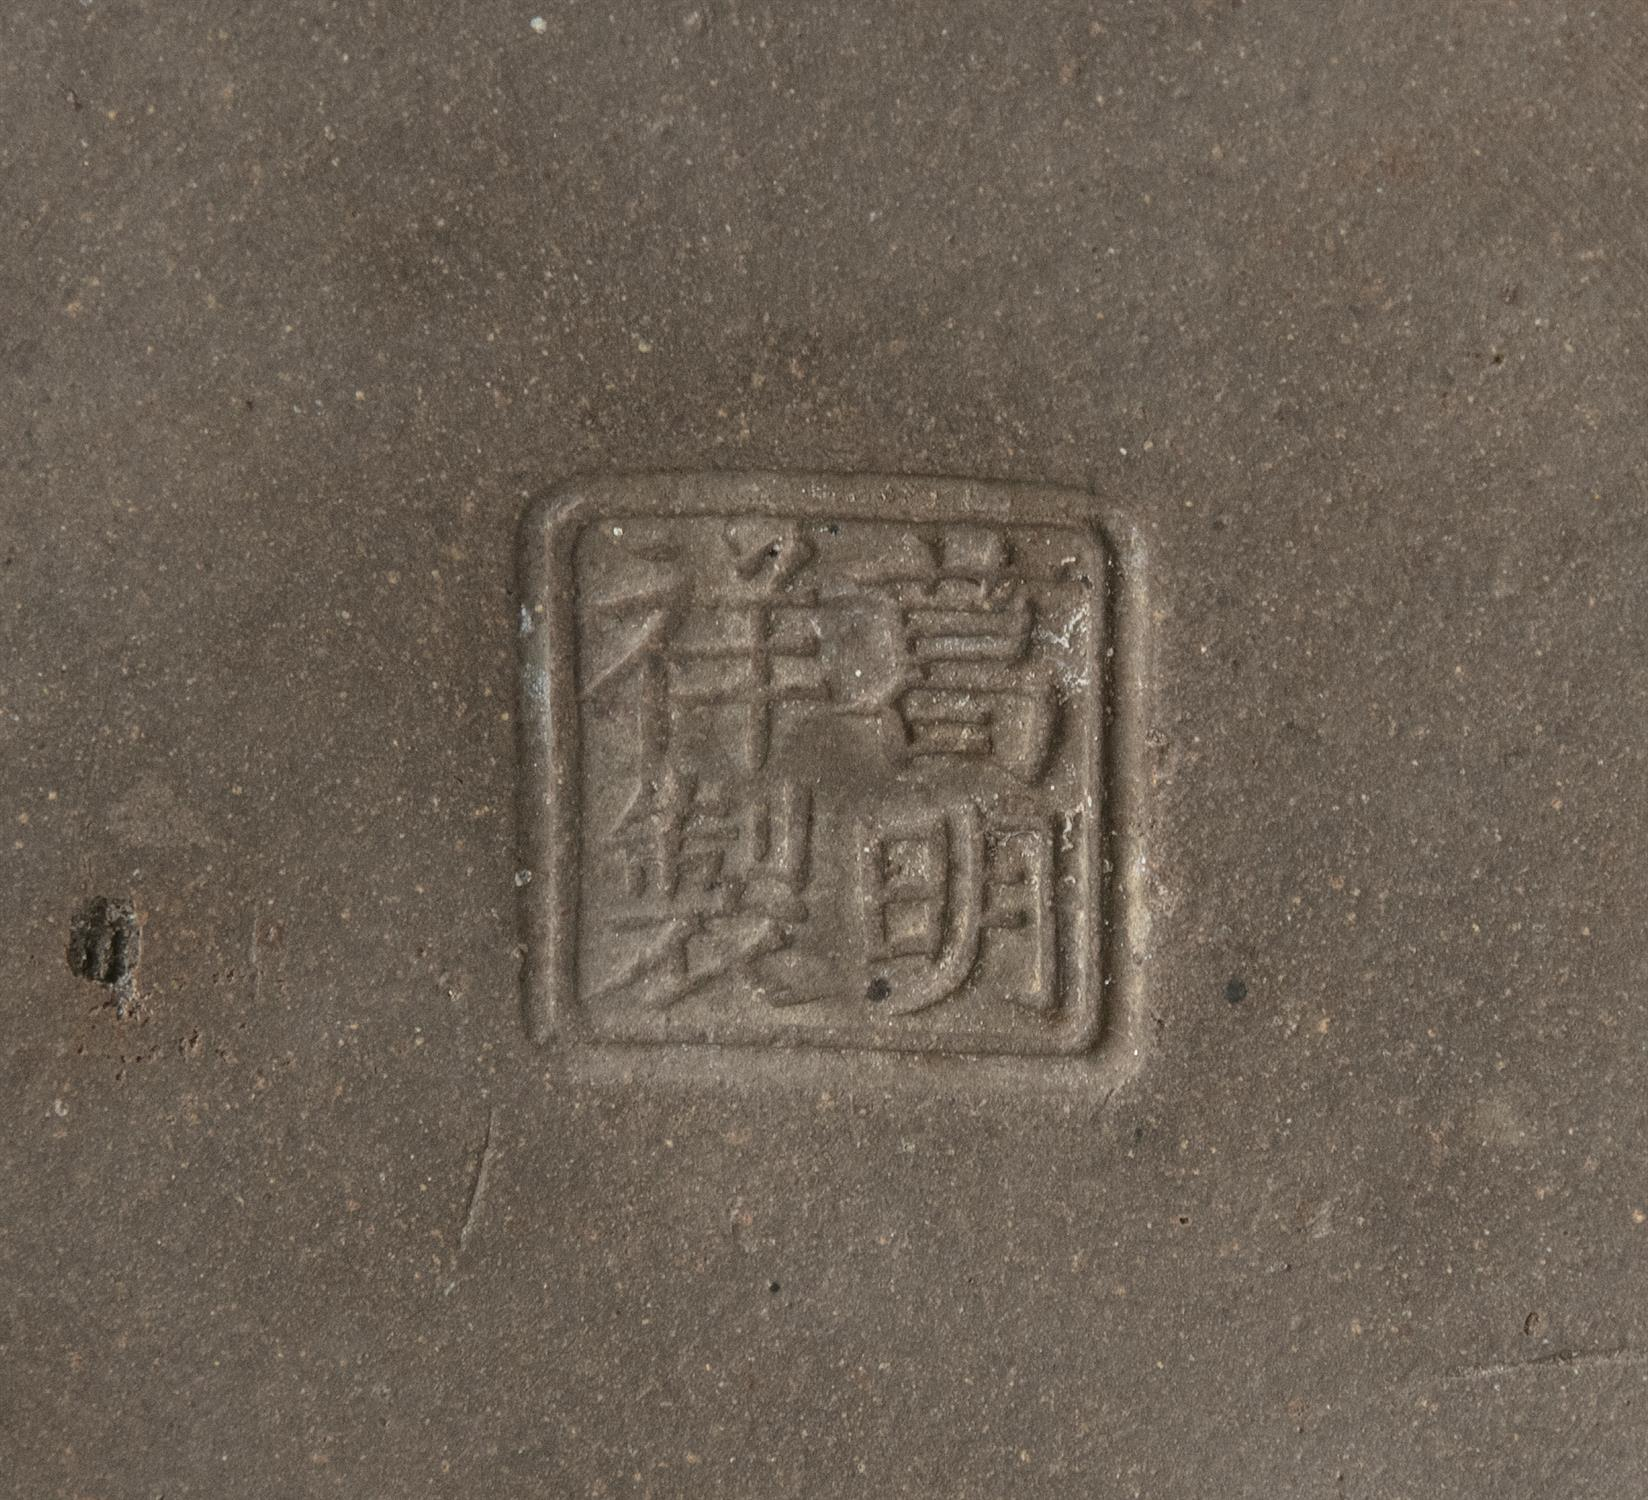 A ROBIN'S EGG GLAZED YIXING VASE BEARING THE SEAL OF GE MINGXIANG 葛明祥 China, 18th century or later - Image 8 of 15